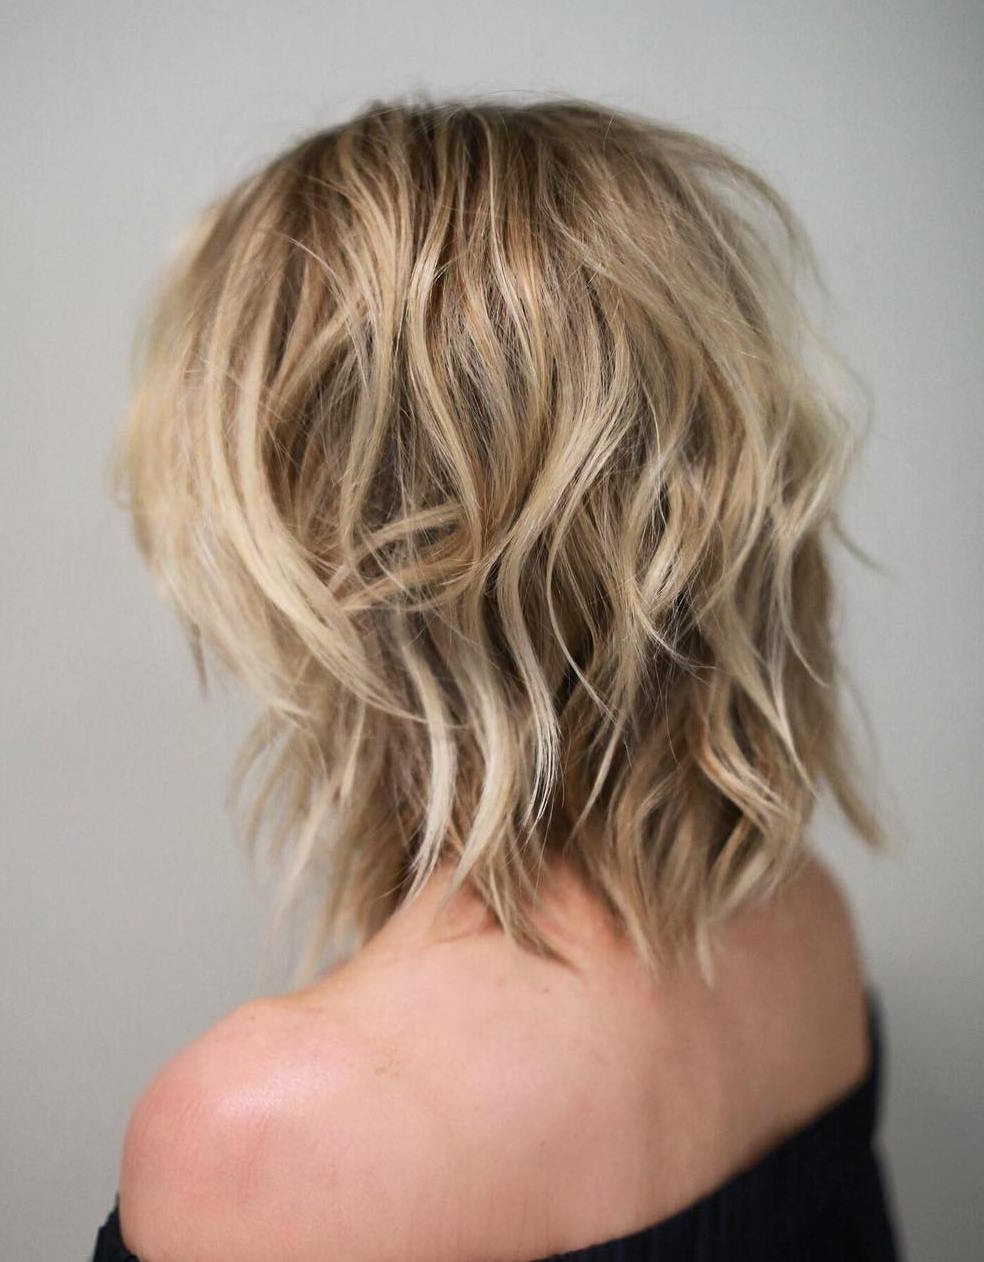 Medium Hairstyles And Haircuts For Shoulder Length Hair In 2018 — Trhs In Widely Used Medium Hairstyles (View 10 of 20)